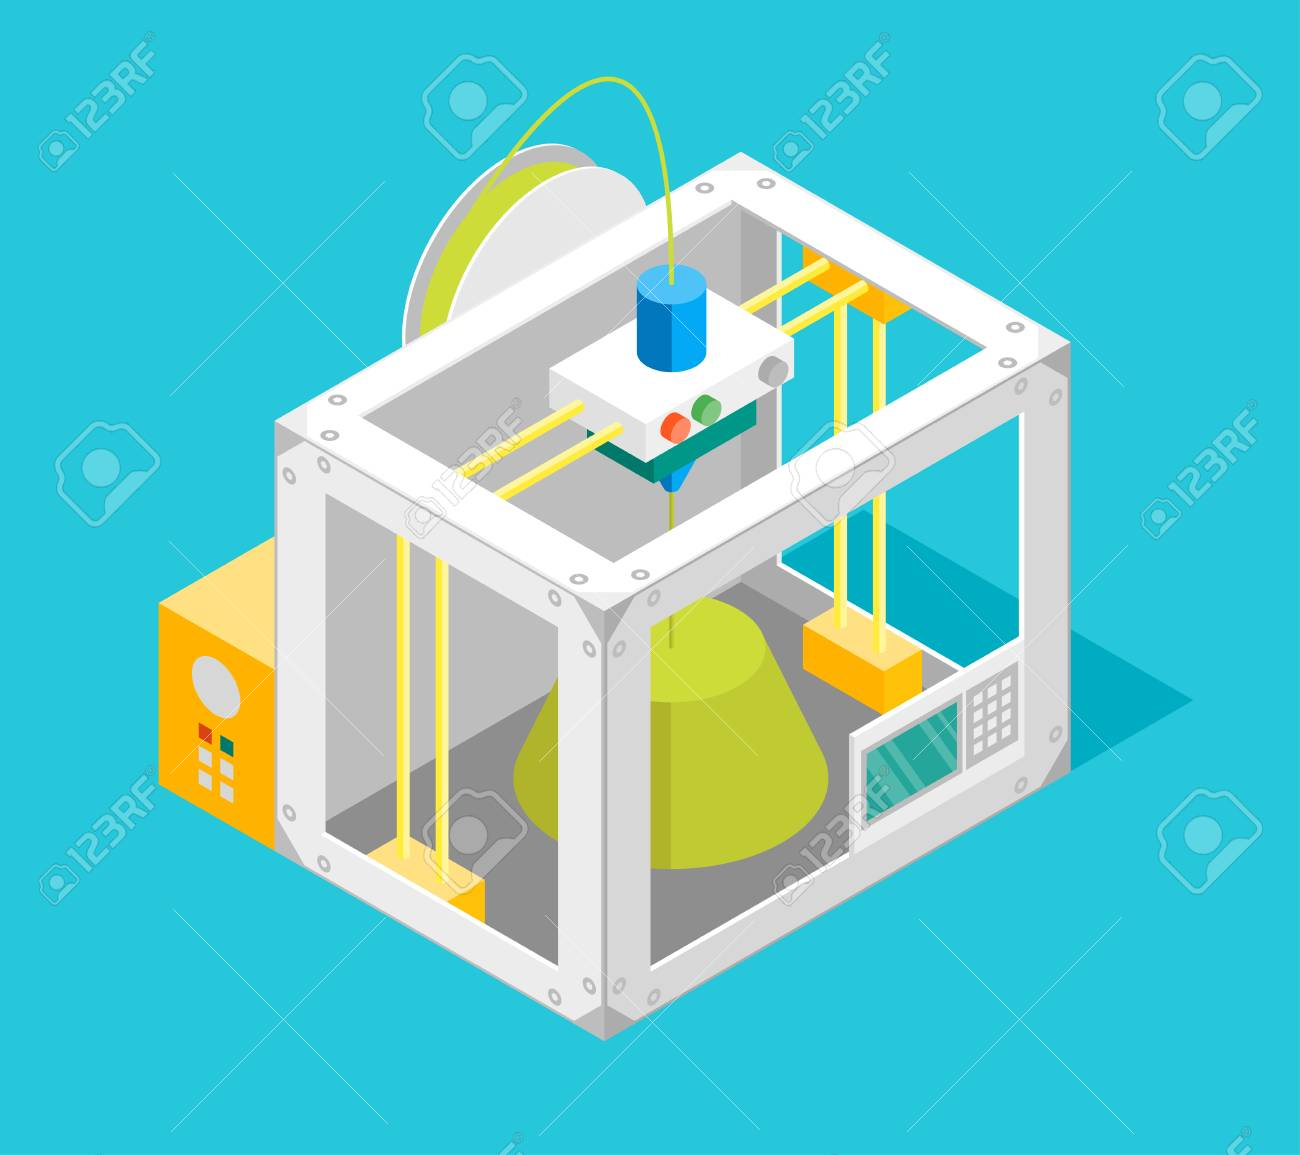 3d Printer Flat Design Style Isometric View. Vector - 88064131